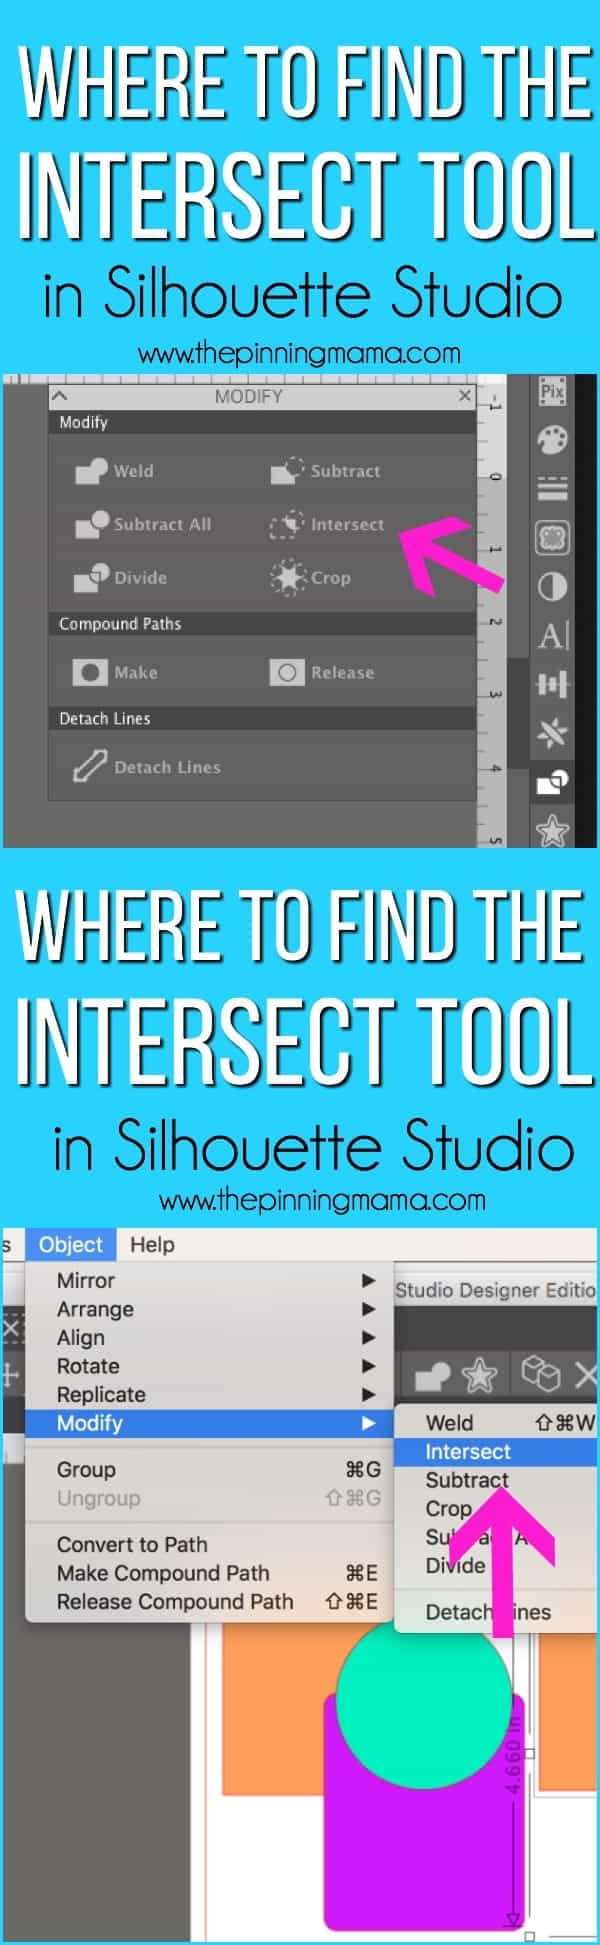 Where do I find the Intersect tool in Silhouette Studio.